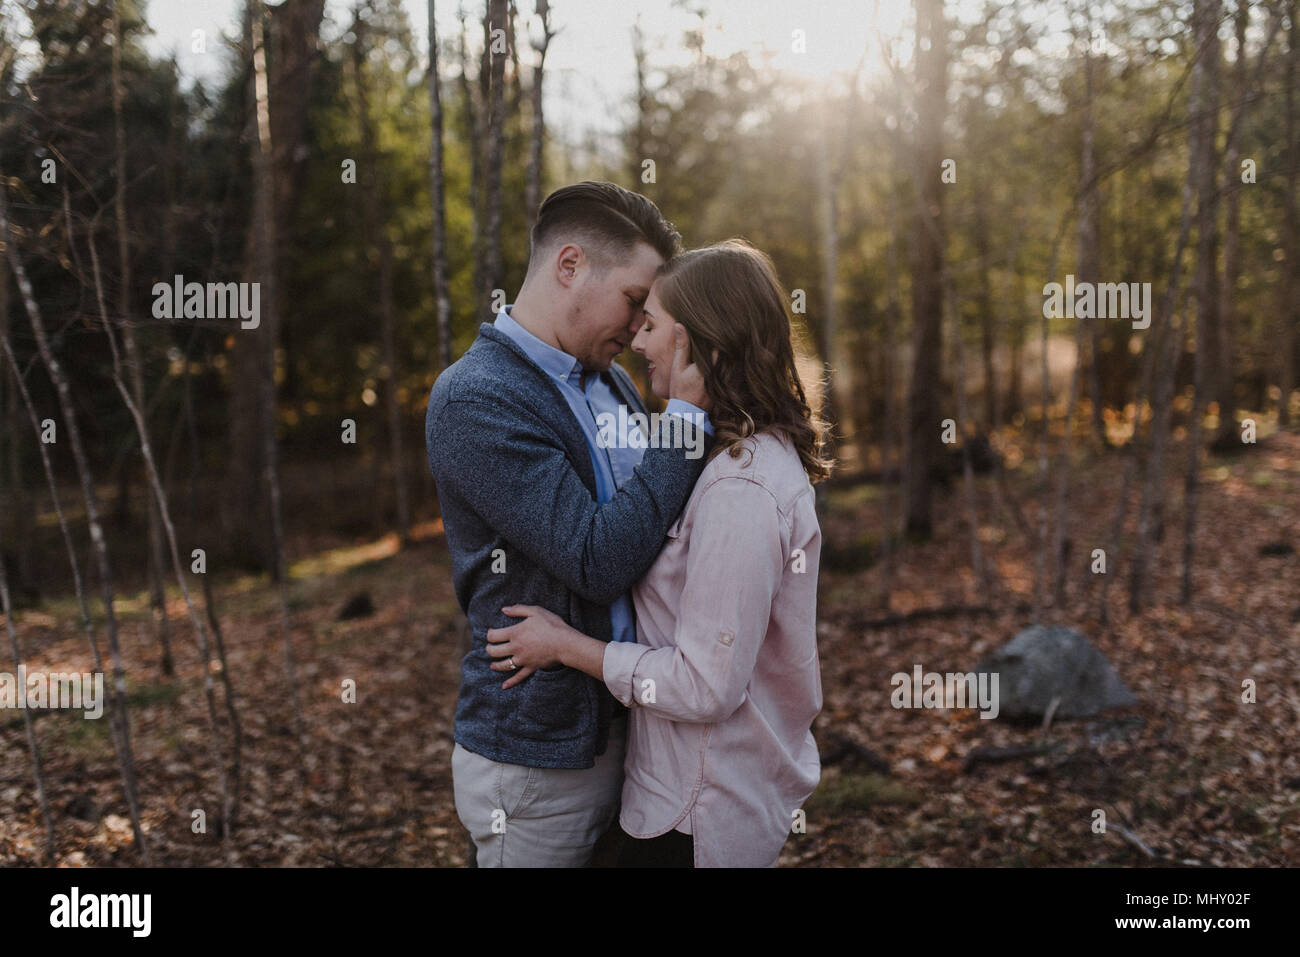 Jeune couple kissing in forest, Ottawa, Canada Photo Stock